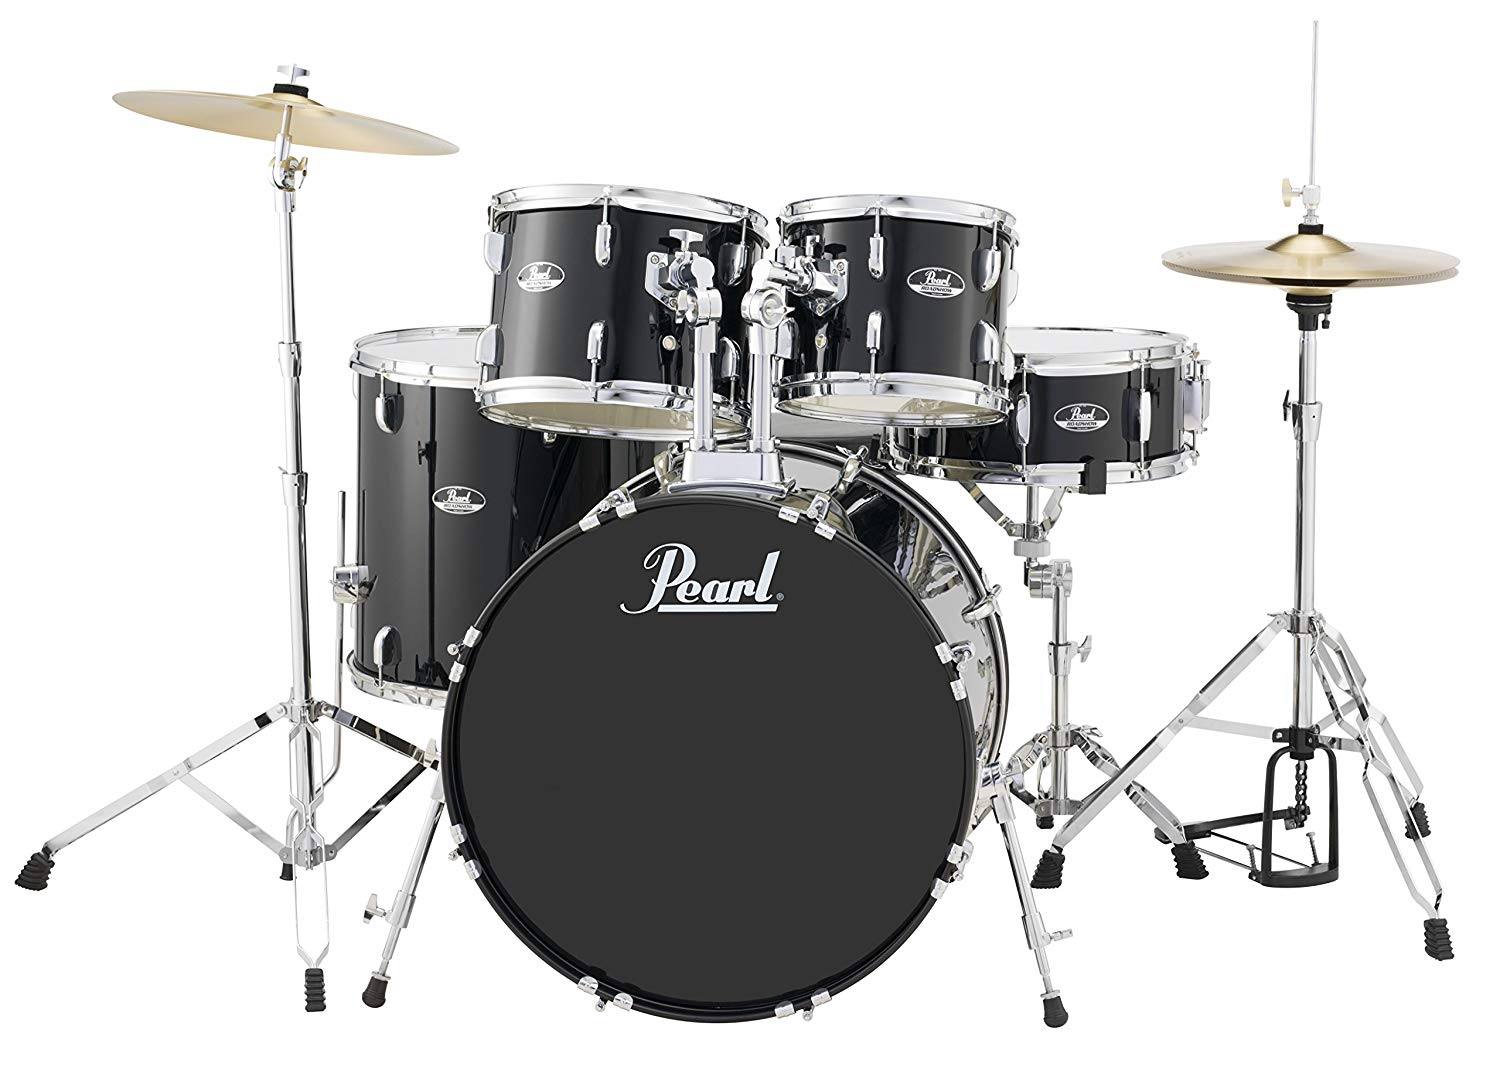 Pearl RS525SCC31 Roadshow 5-Piece Drum Set